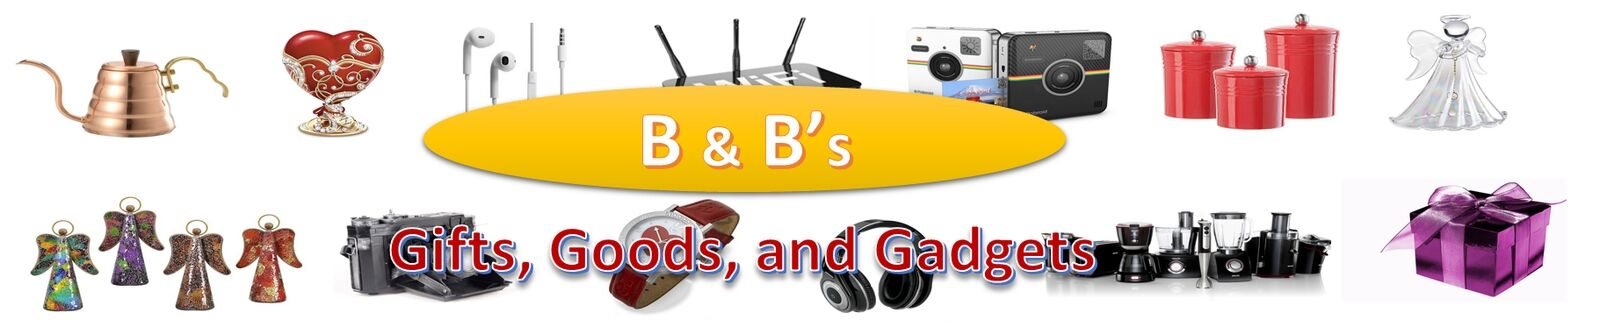 B & B's Gifts Goods and Gadgets